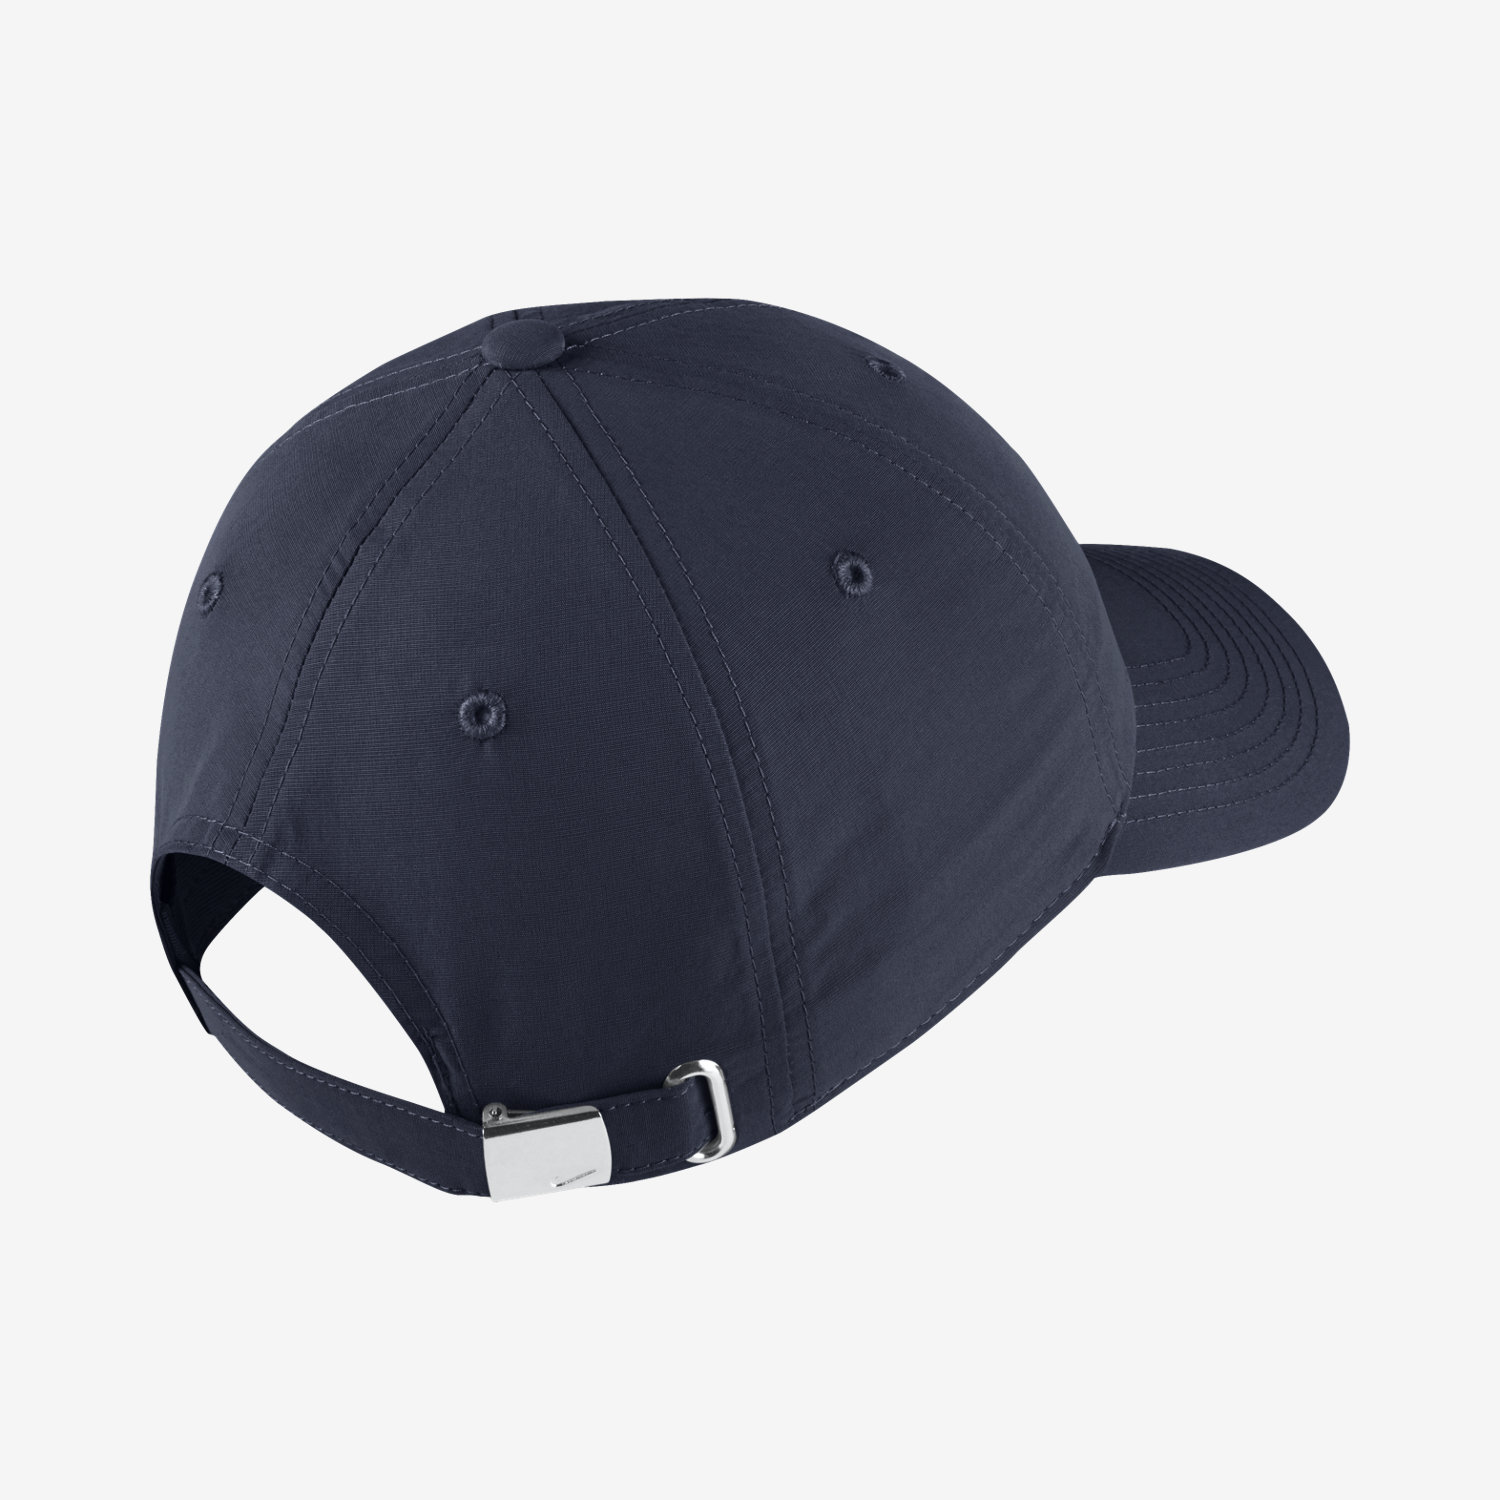 754d9e05617 ... where can i buy nike strap hat online off69 discounts bac9d 9b513